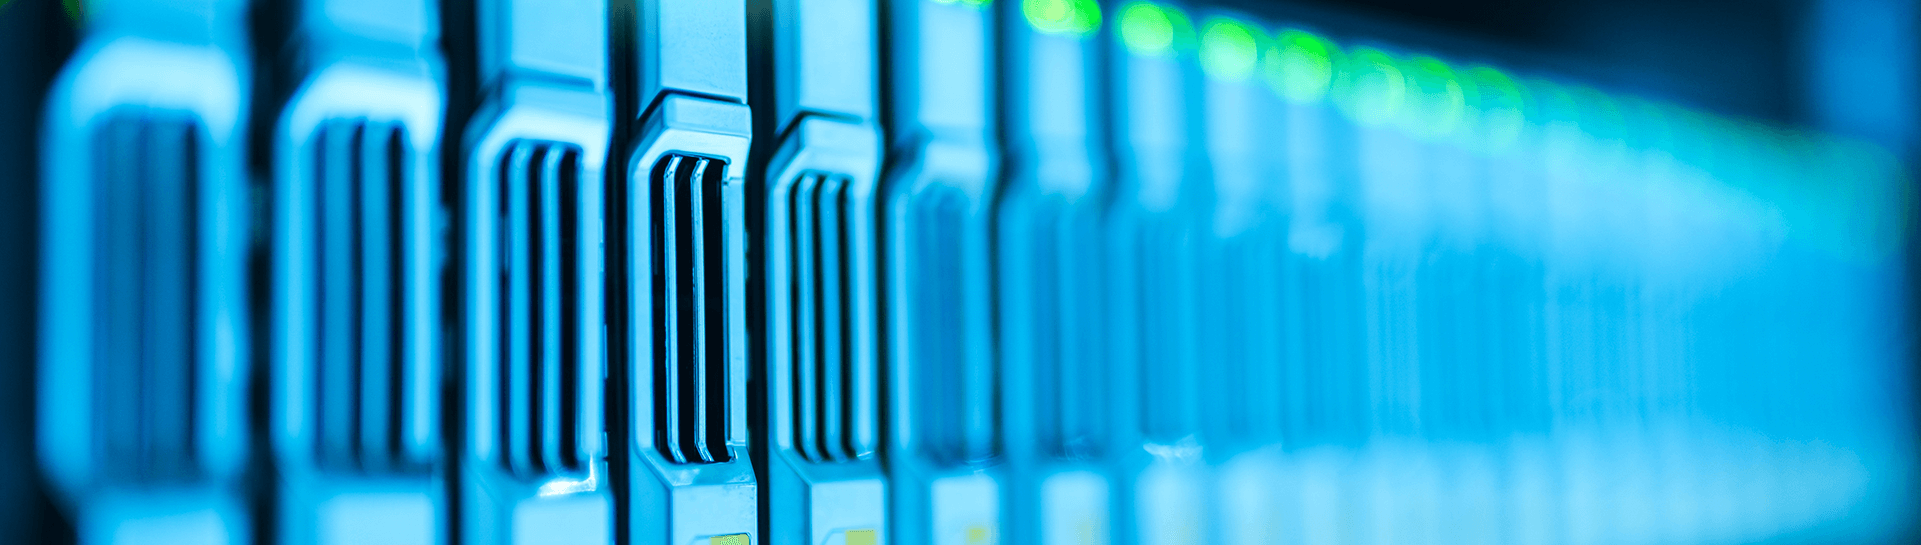 A close up of servers